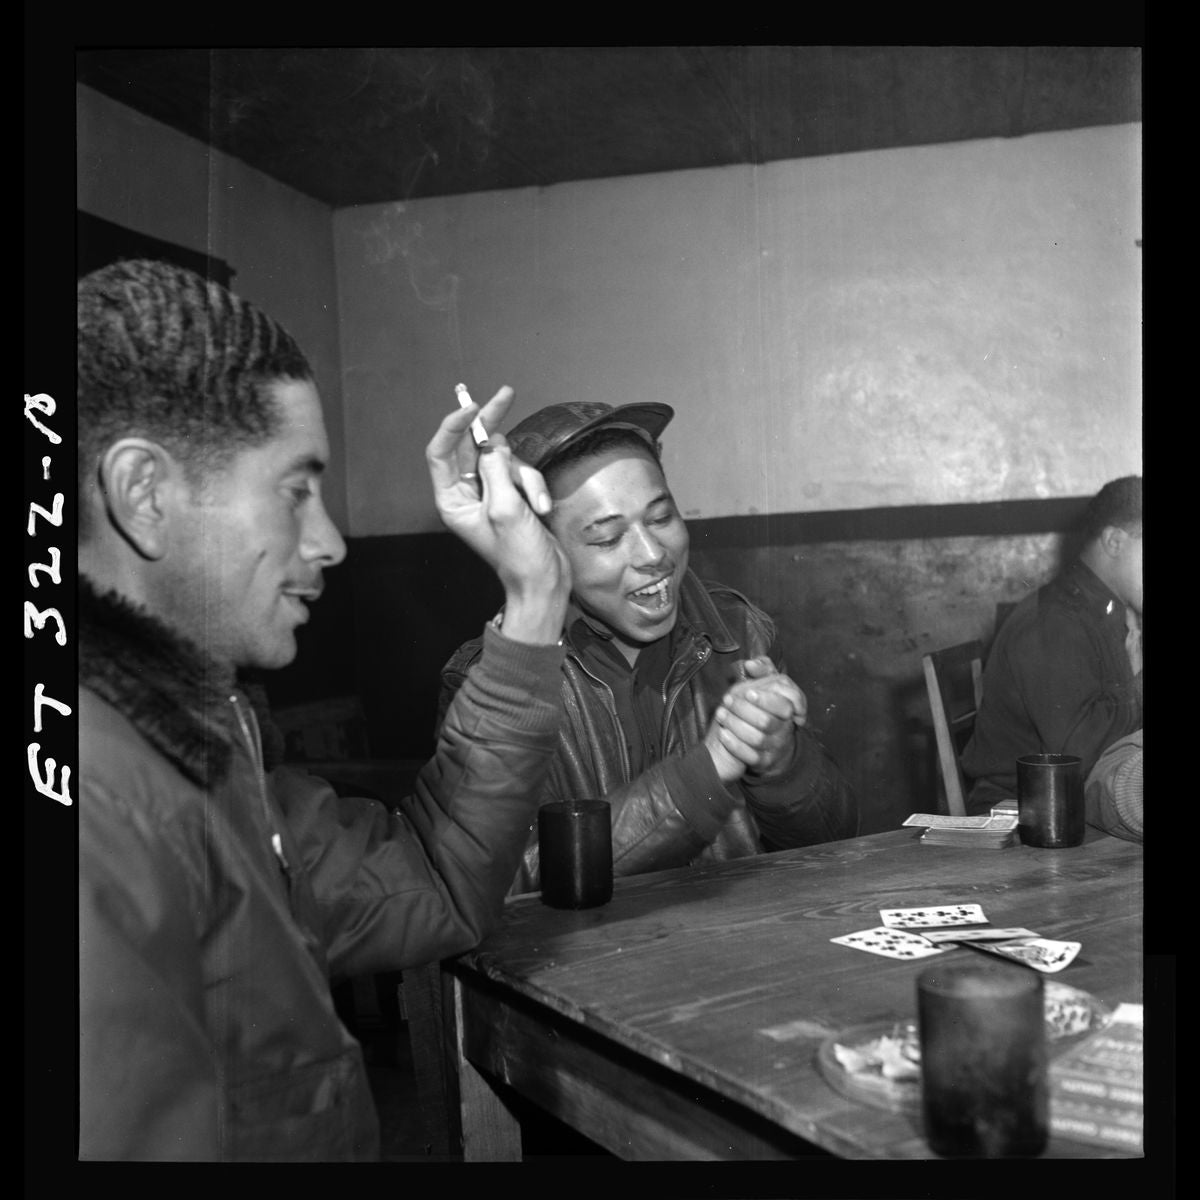 Tuskegee airmen playing cards in the officers' club in the evening by Toni Frissell - March 1945